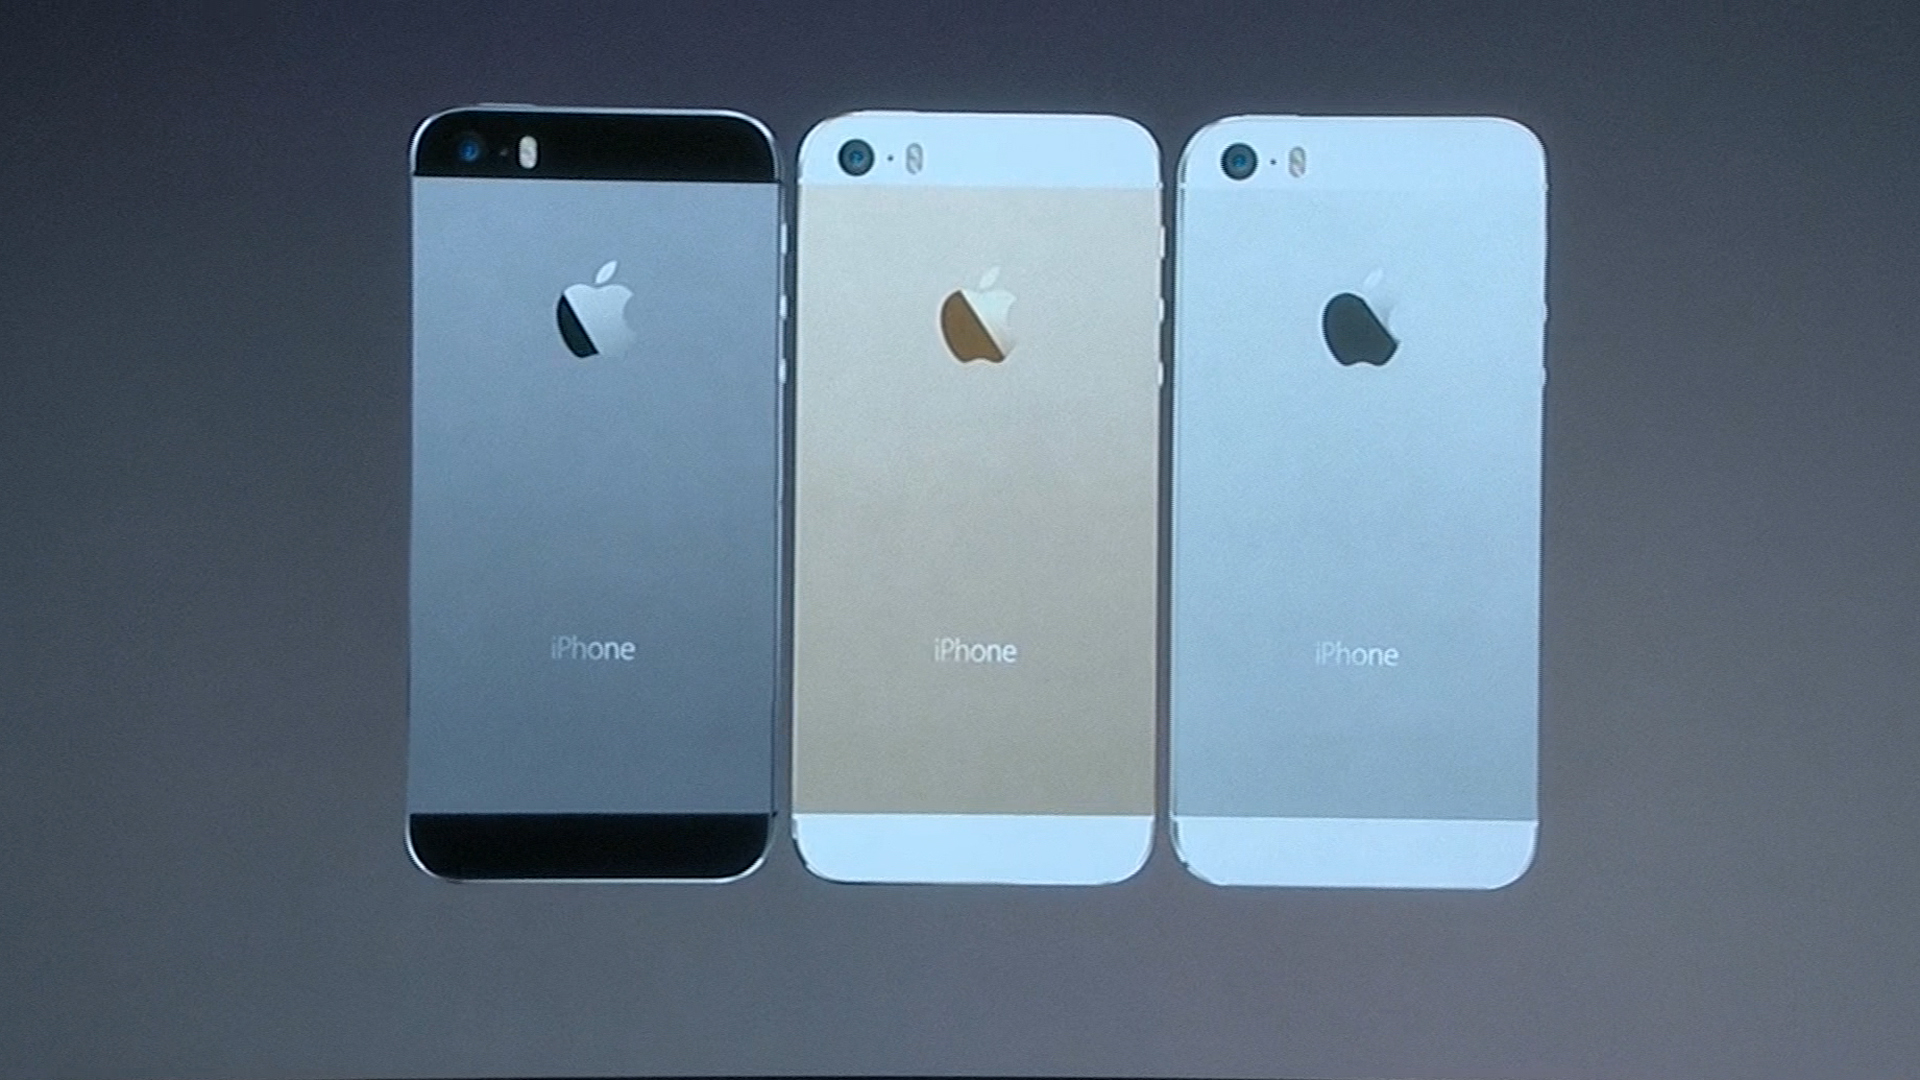 iphone 5s colors apple s iphone 5s features new colors fingerprint scanner 11180